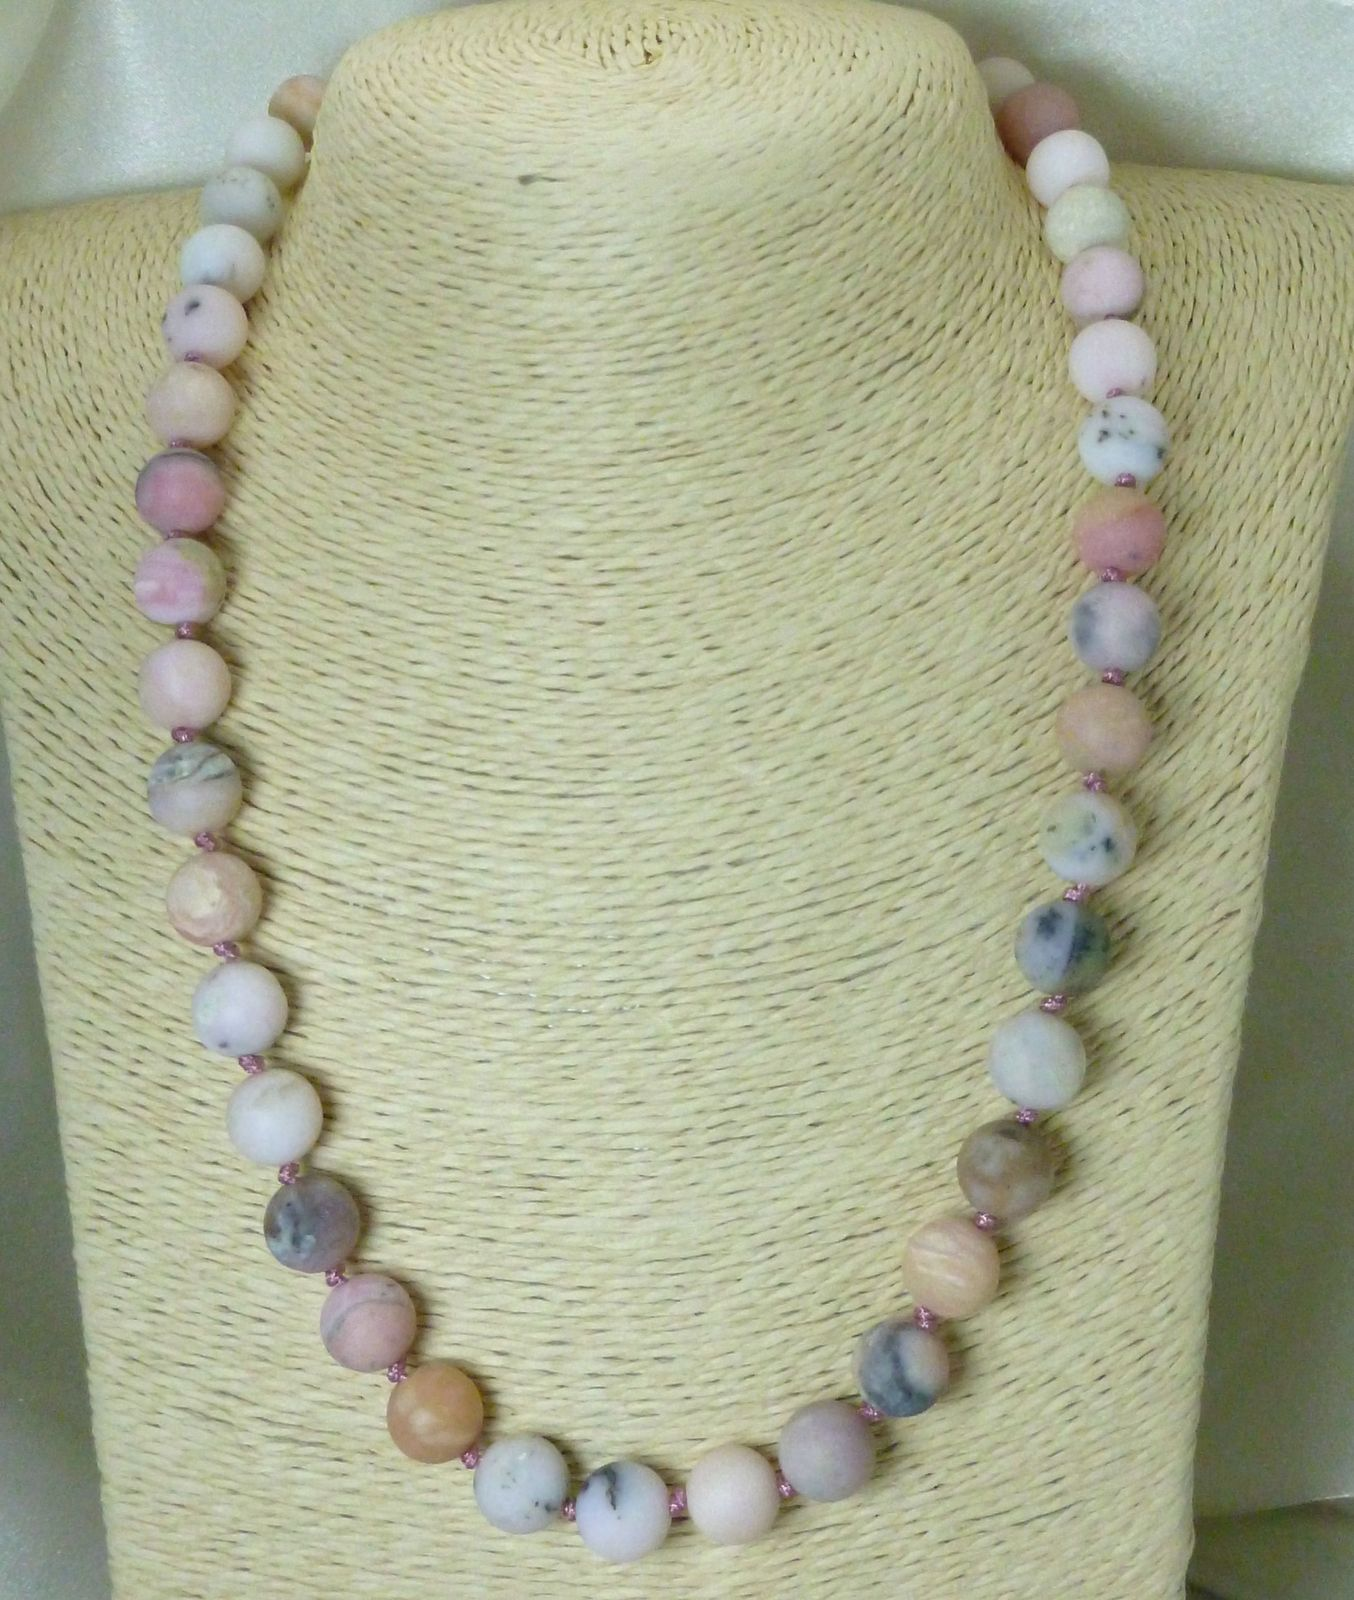 Matte Pink Opal Natural Gemstones Round Beaded Necklace 20.5""